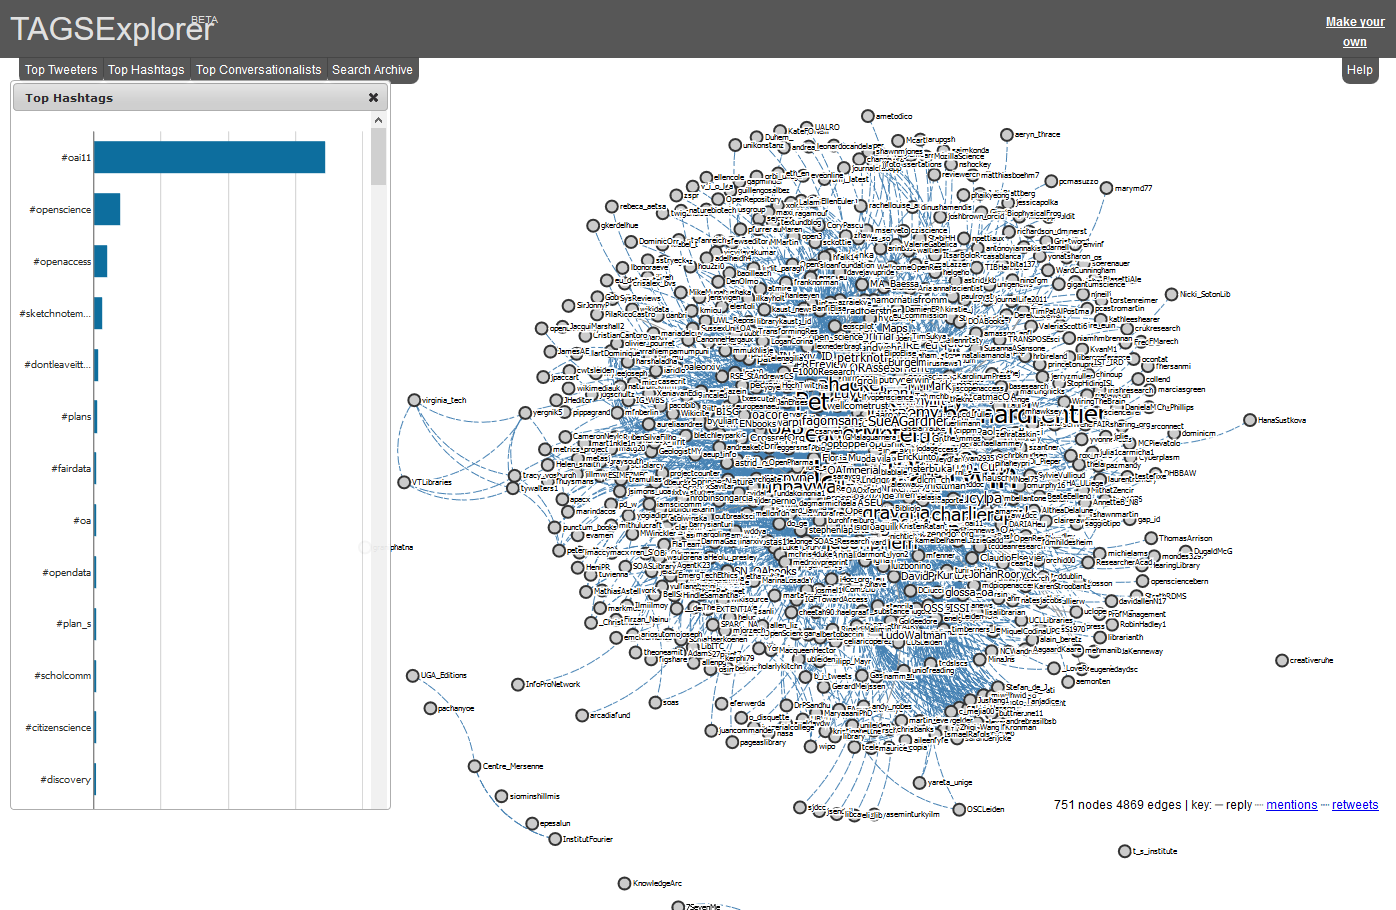 A tweeter social network visualization and analysis tool